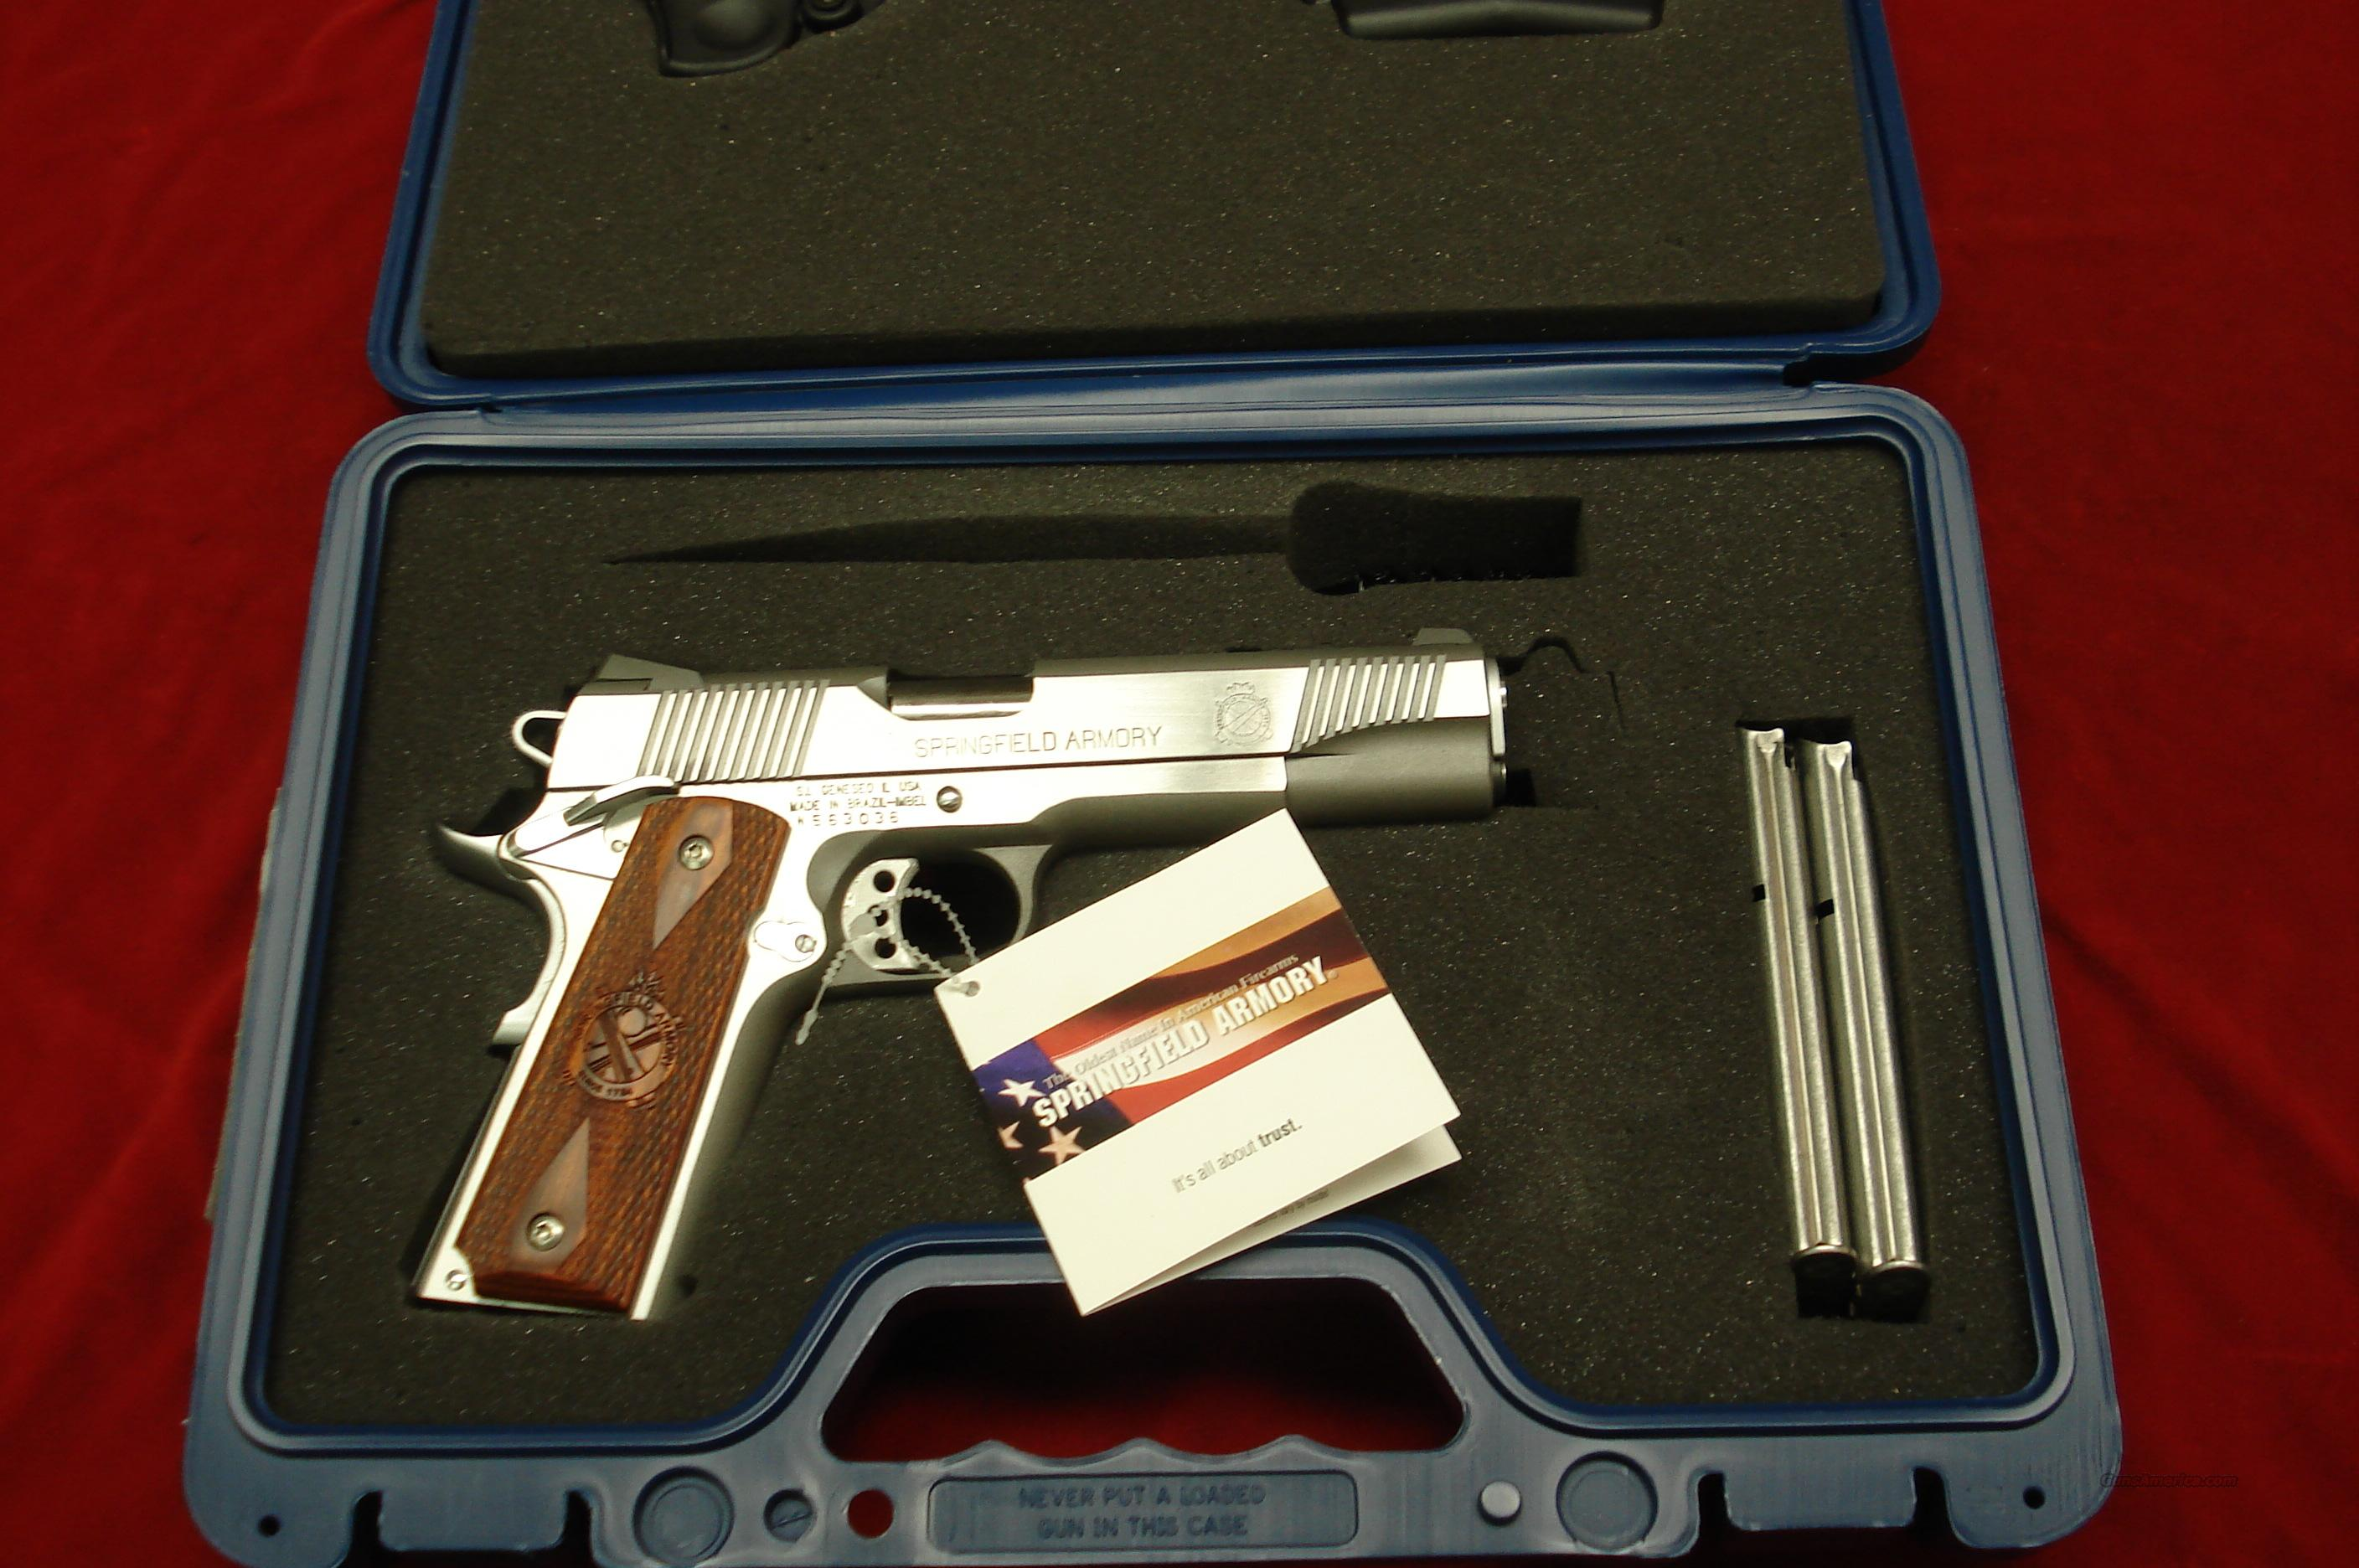 SPRINGFIELD ARMORY 9MM STAINLESS LOADED (PX9130LP) NEW  Guns > Pistols > Springfield Armory Pistols > 1911 Type